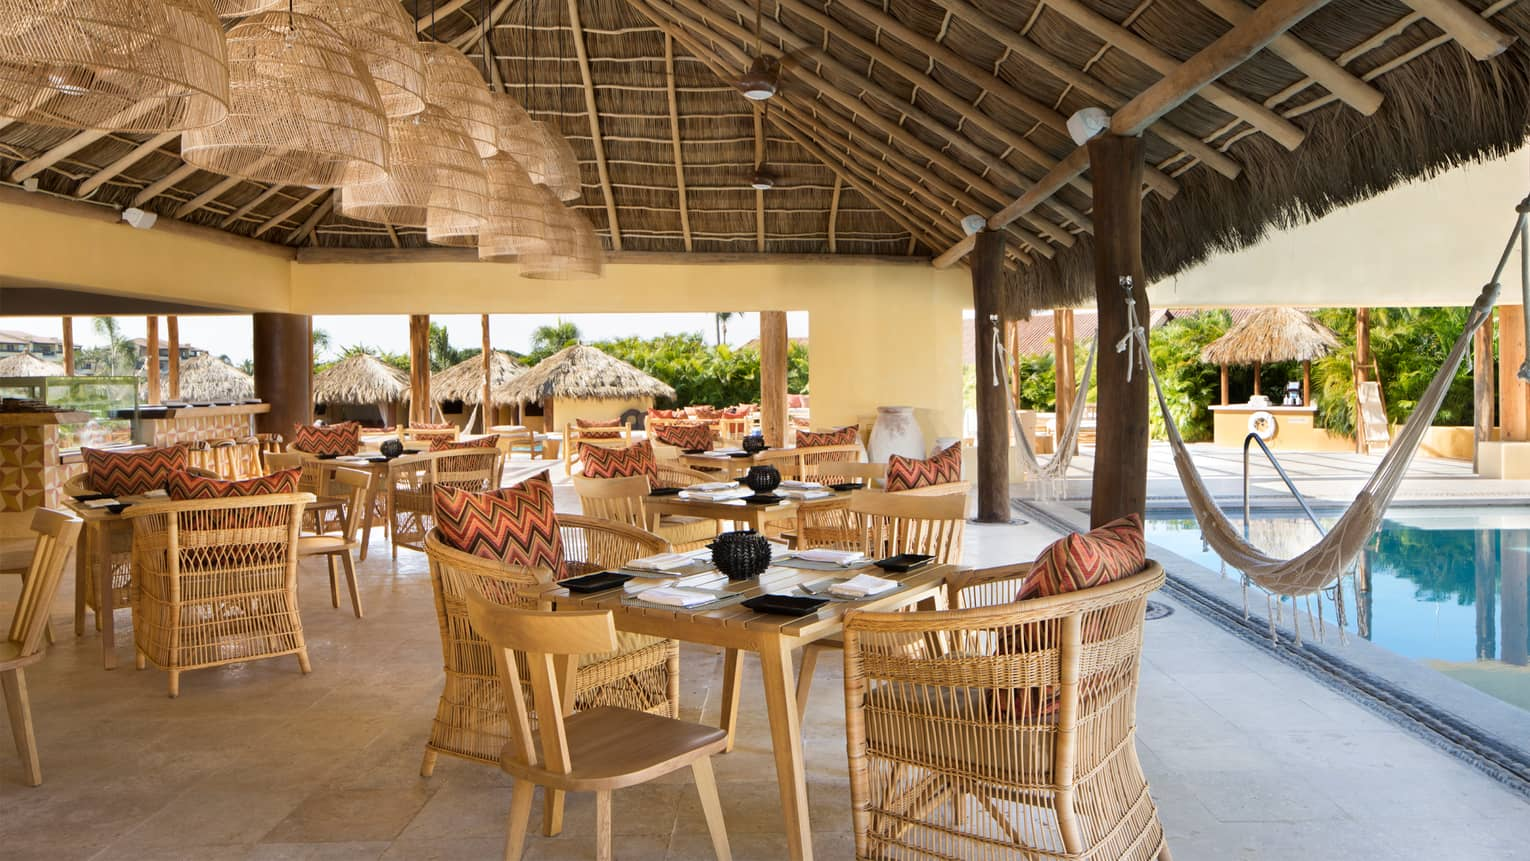 Tamai Pool Bar light wicker dining chairs and tables under thatched roof cabana by pool, hammocks